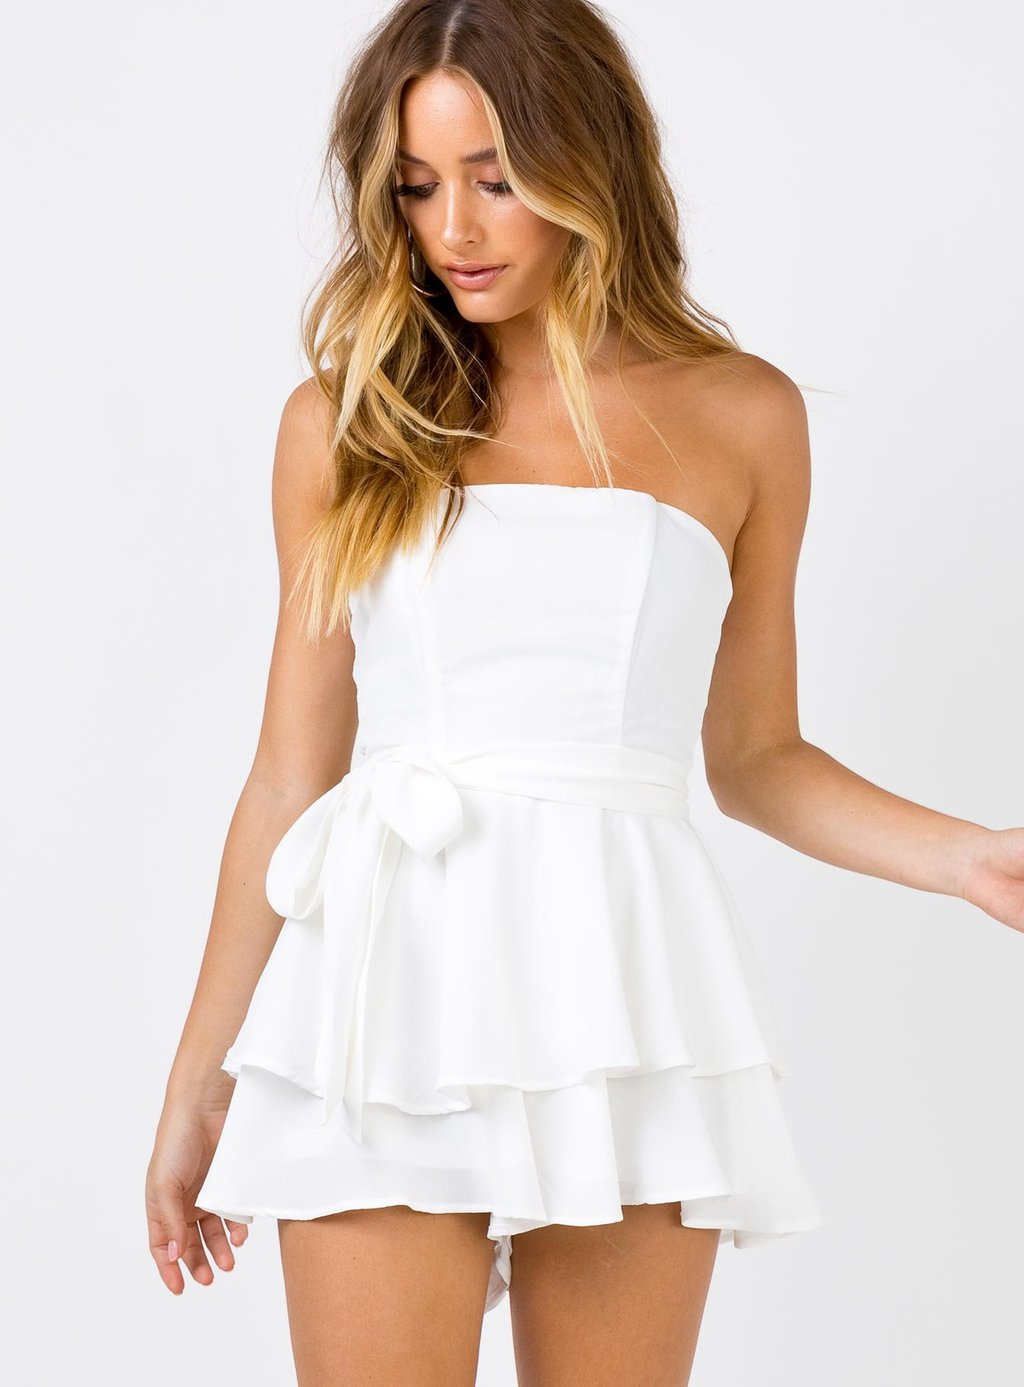 White romper from Princess Polly